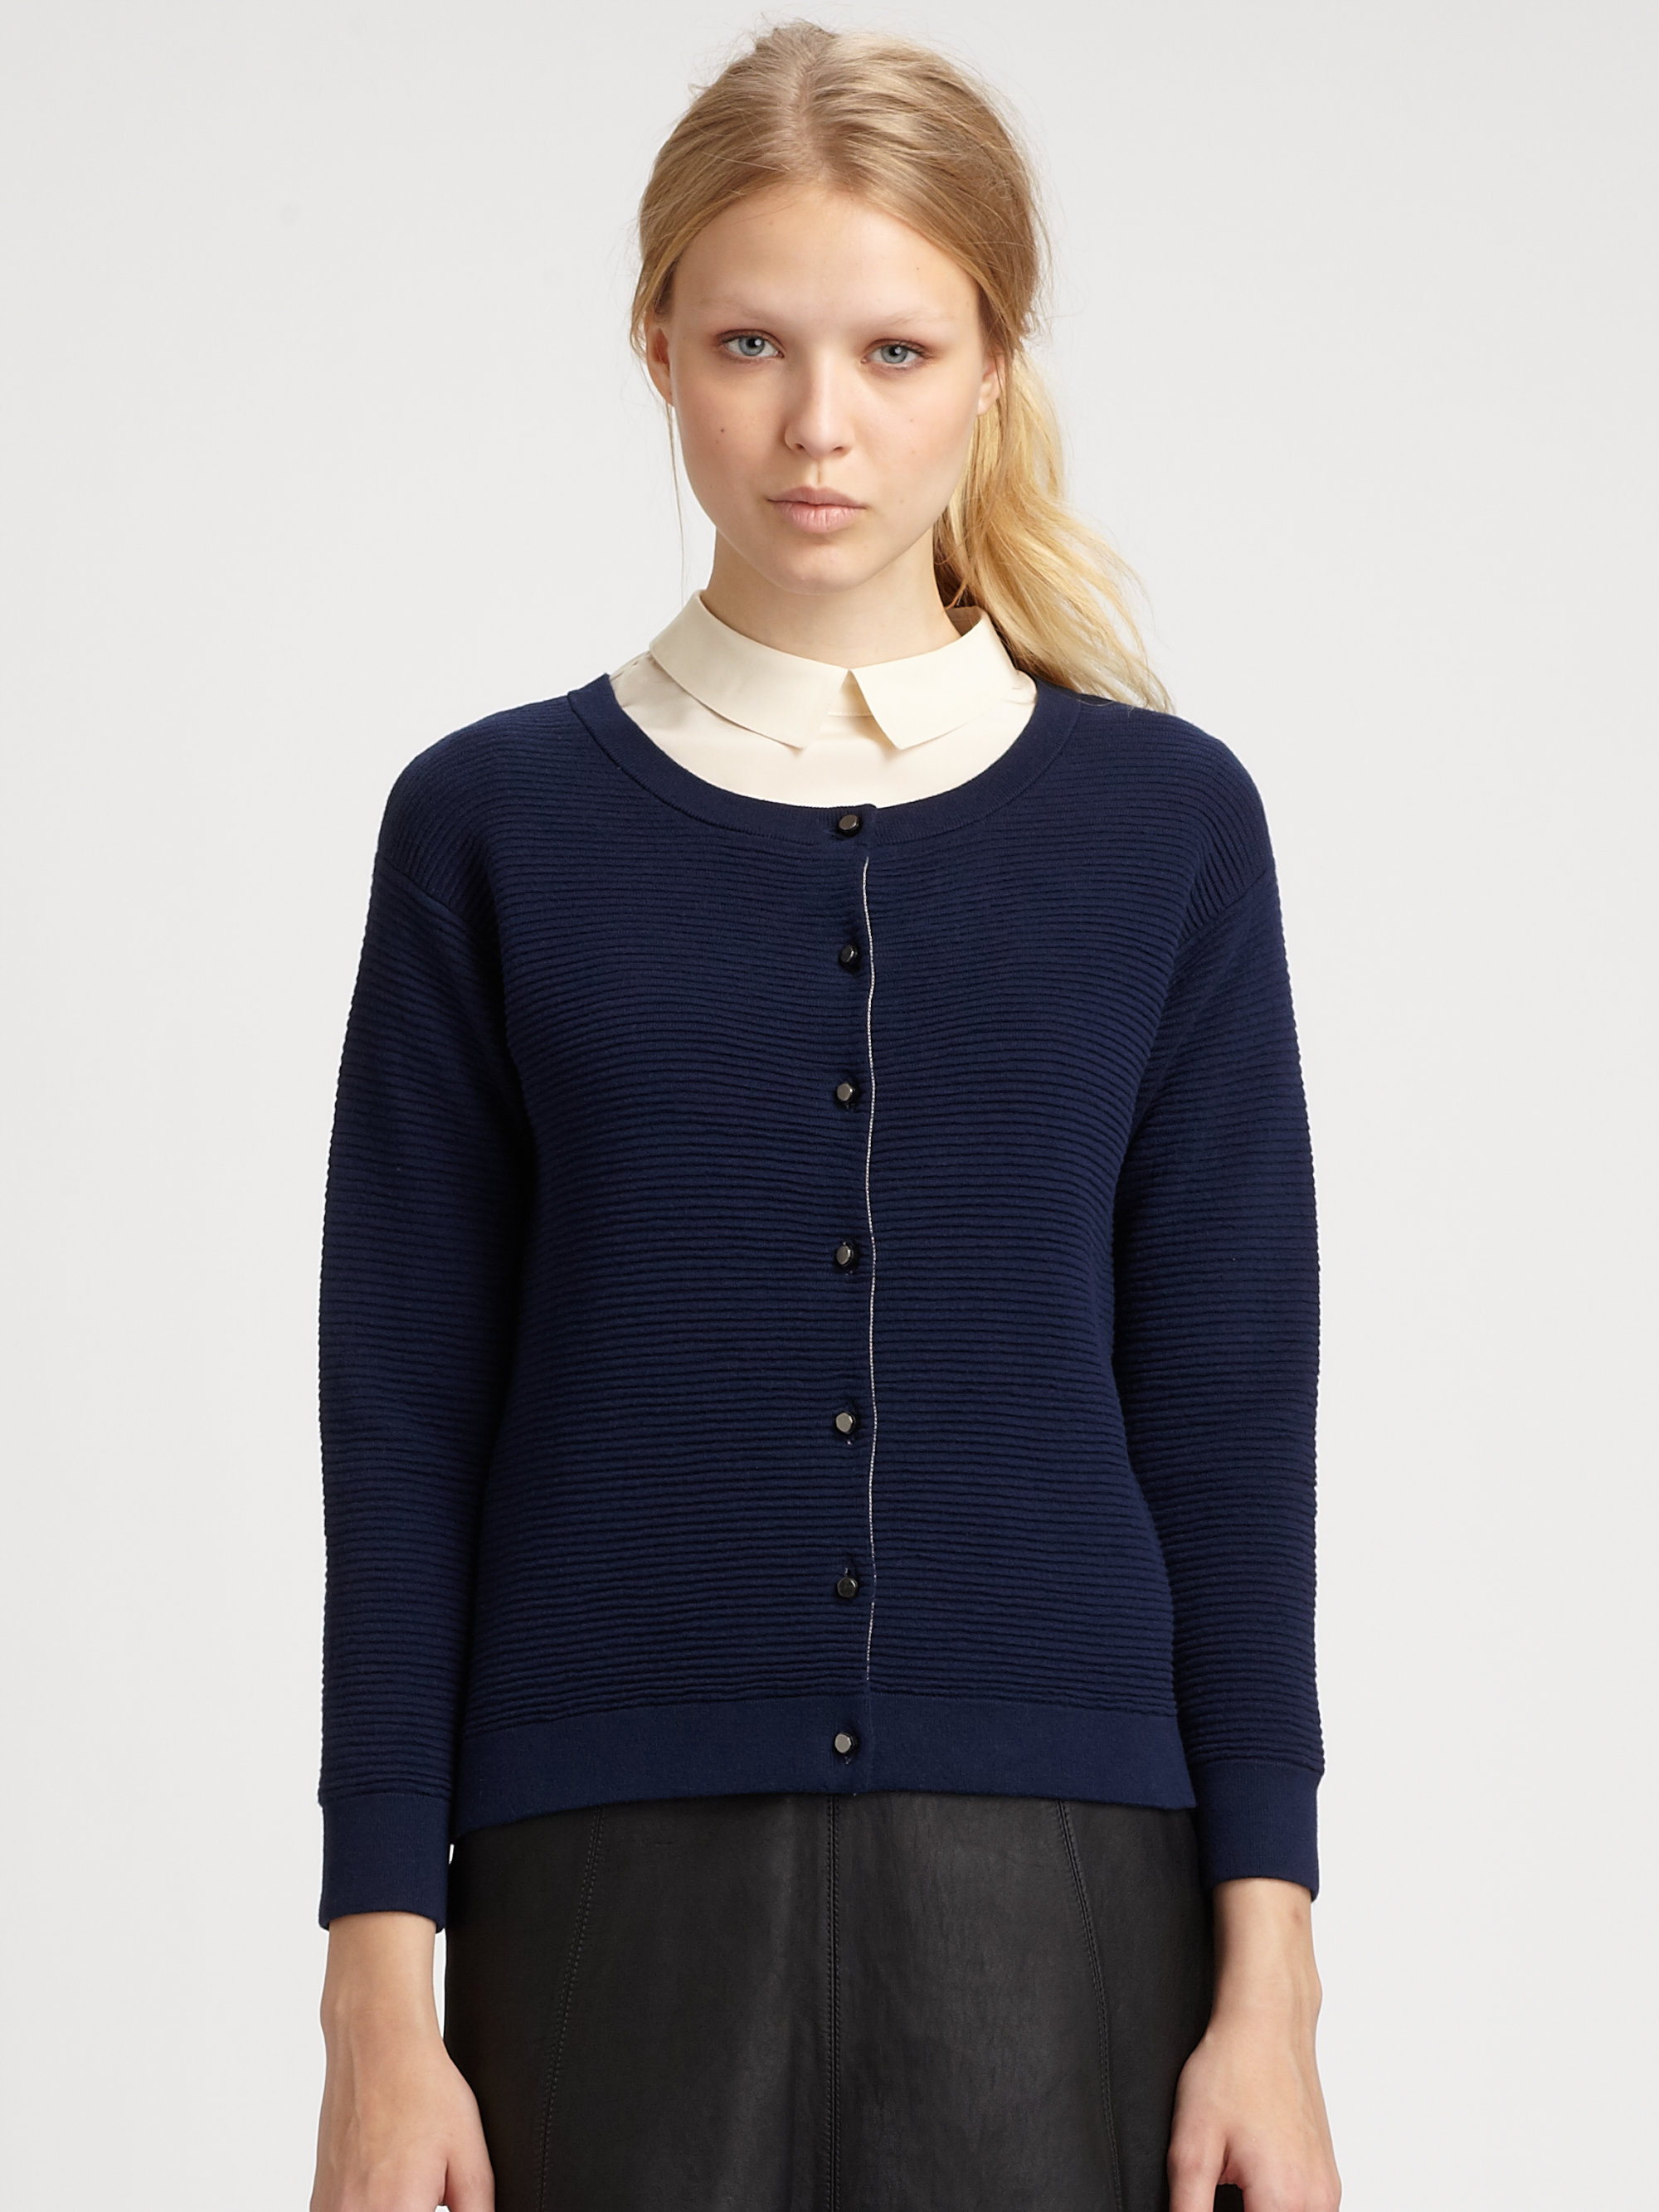 marc by marc jacobs cheryl cardigan sweater in blue lyst. Black Bedroom Furniture Sets. Home Design Ideas